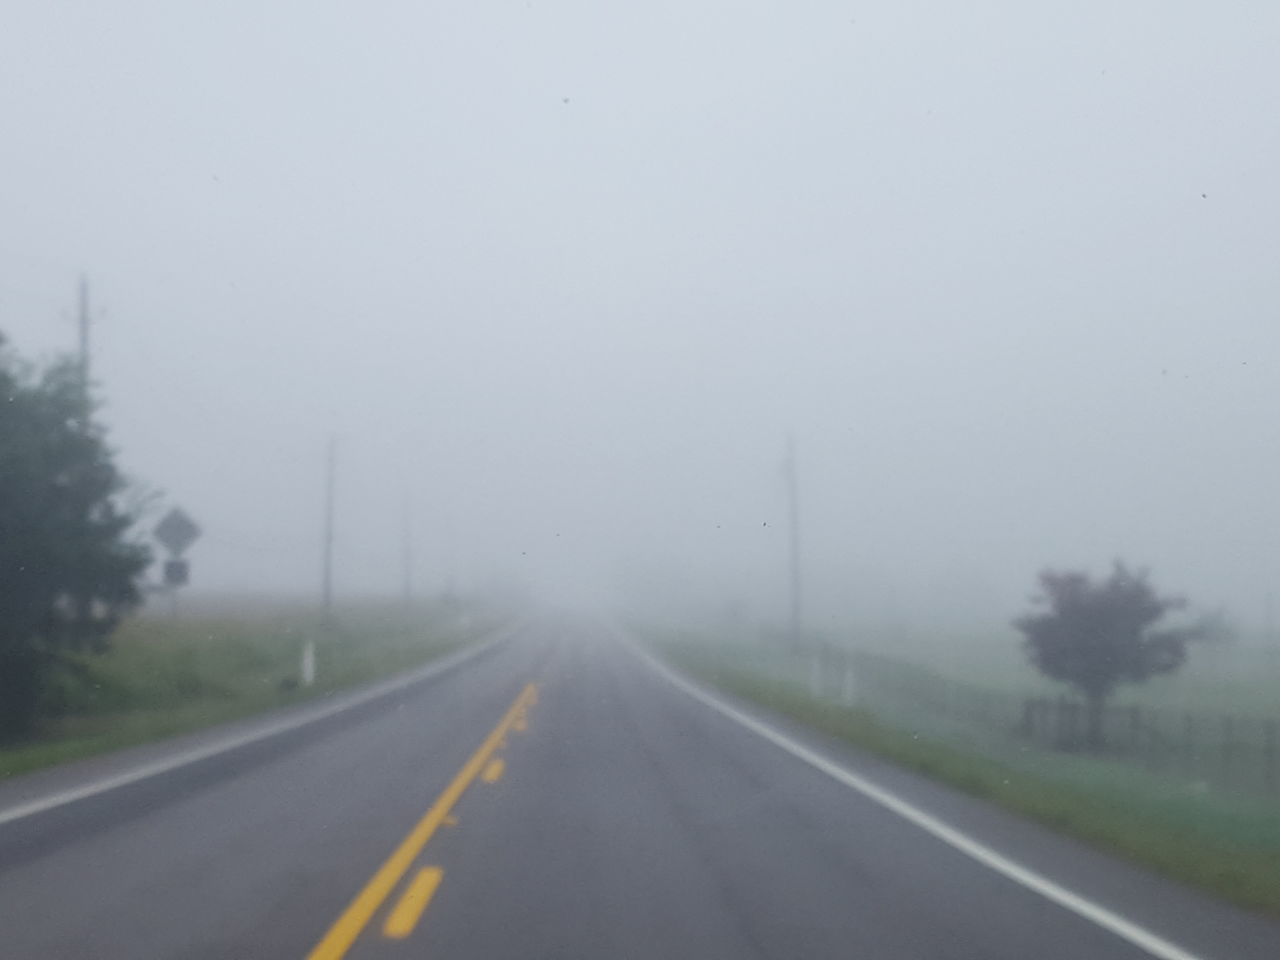 the way forward, road, road marking, diminishing perspective, fog, transportation, weather, white line, day, foggy, nature, tree, no people, outdoors, asphalt, landscape, tranquility, scenics, sky, beauty in nature